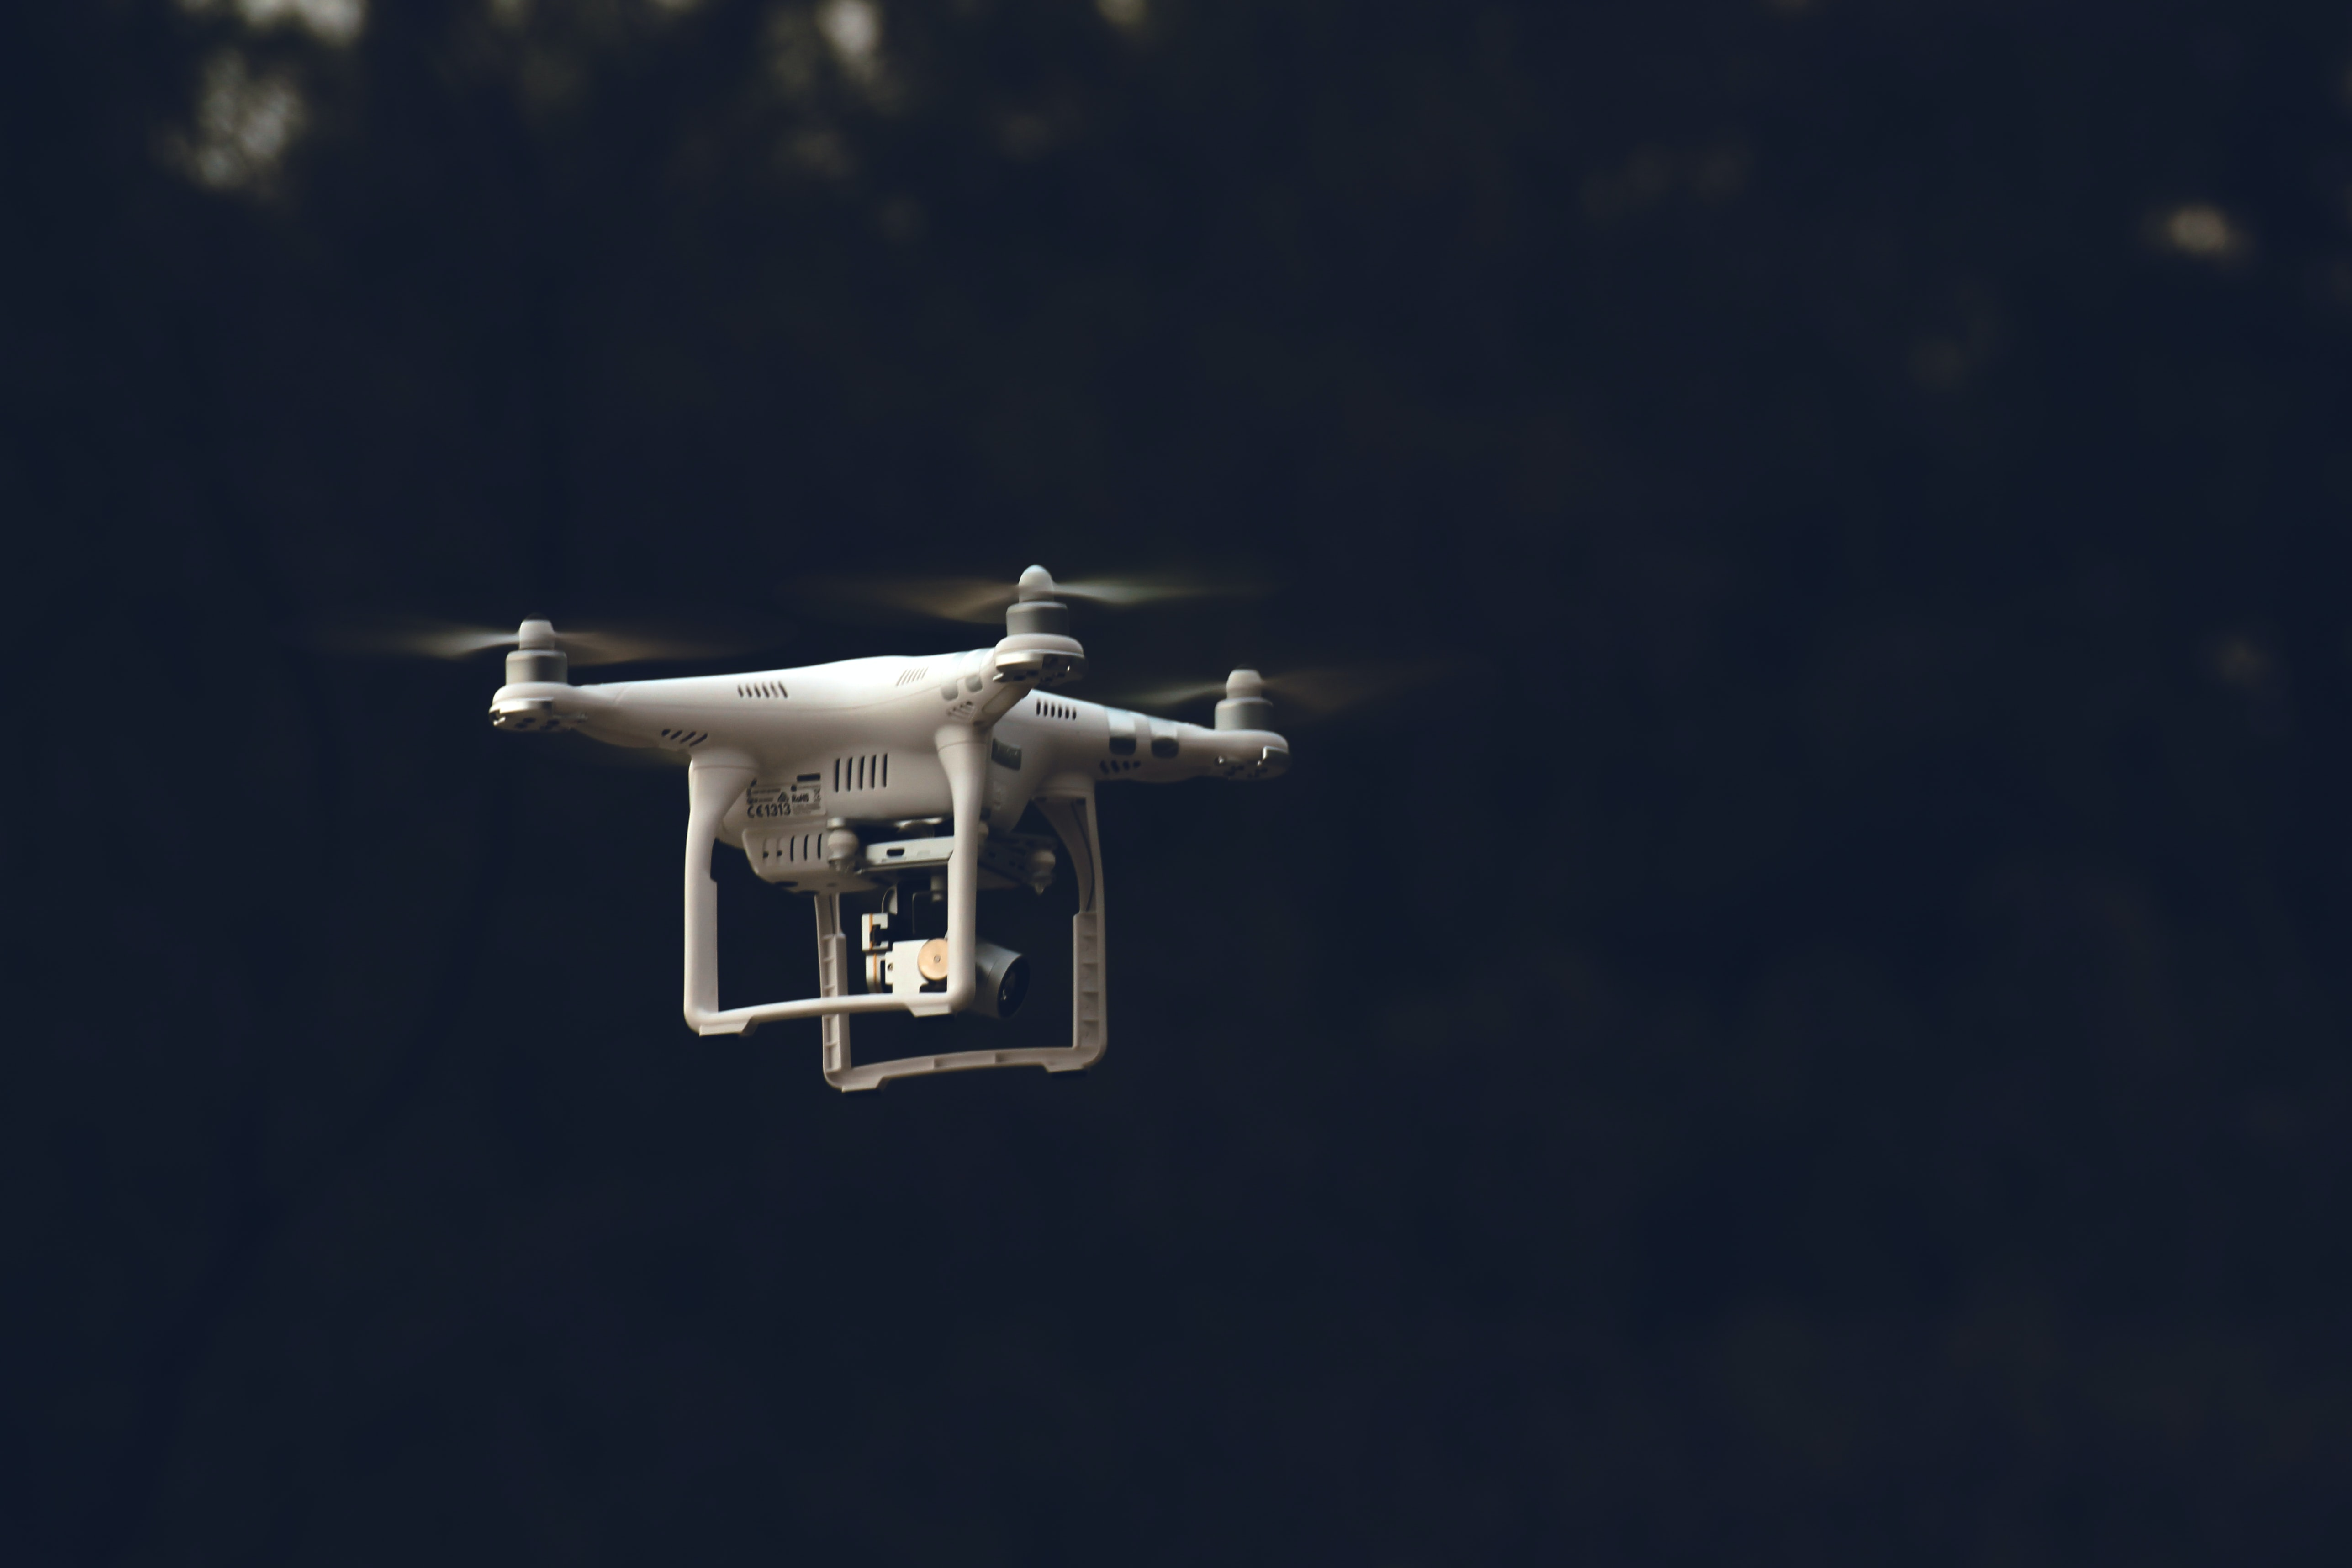 white DJI phantom-series quadcopter flying during daytime